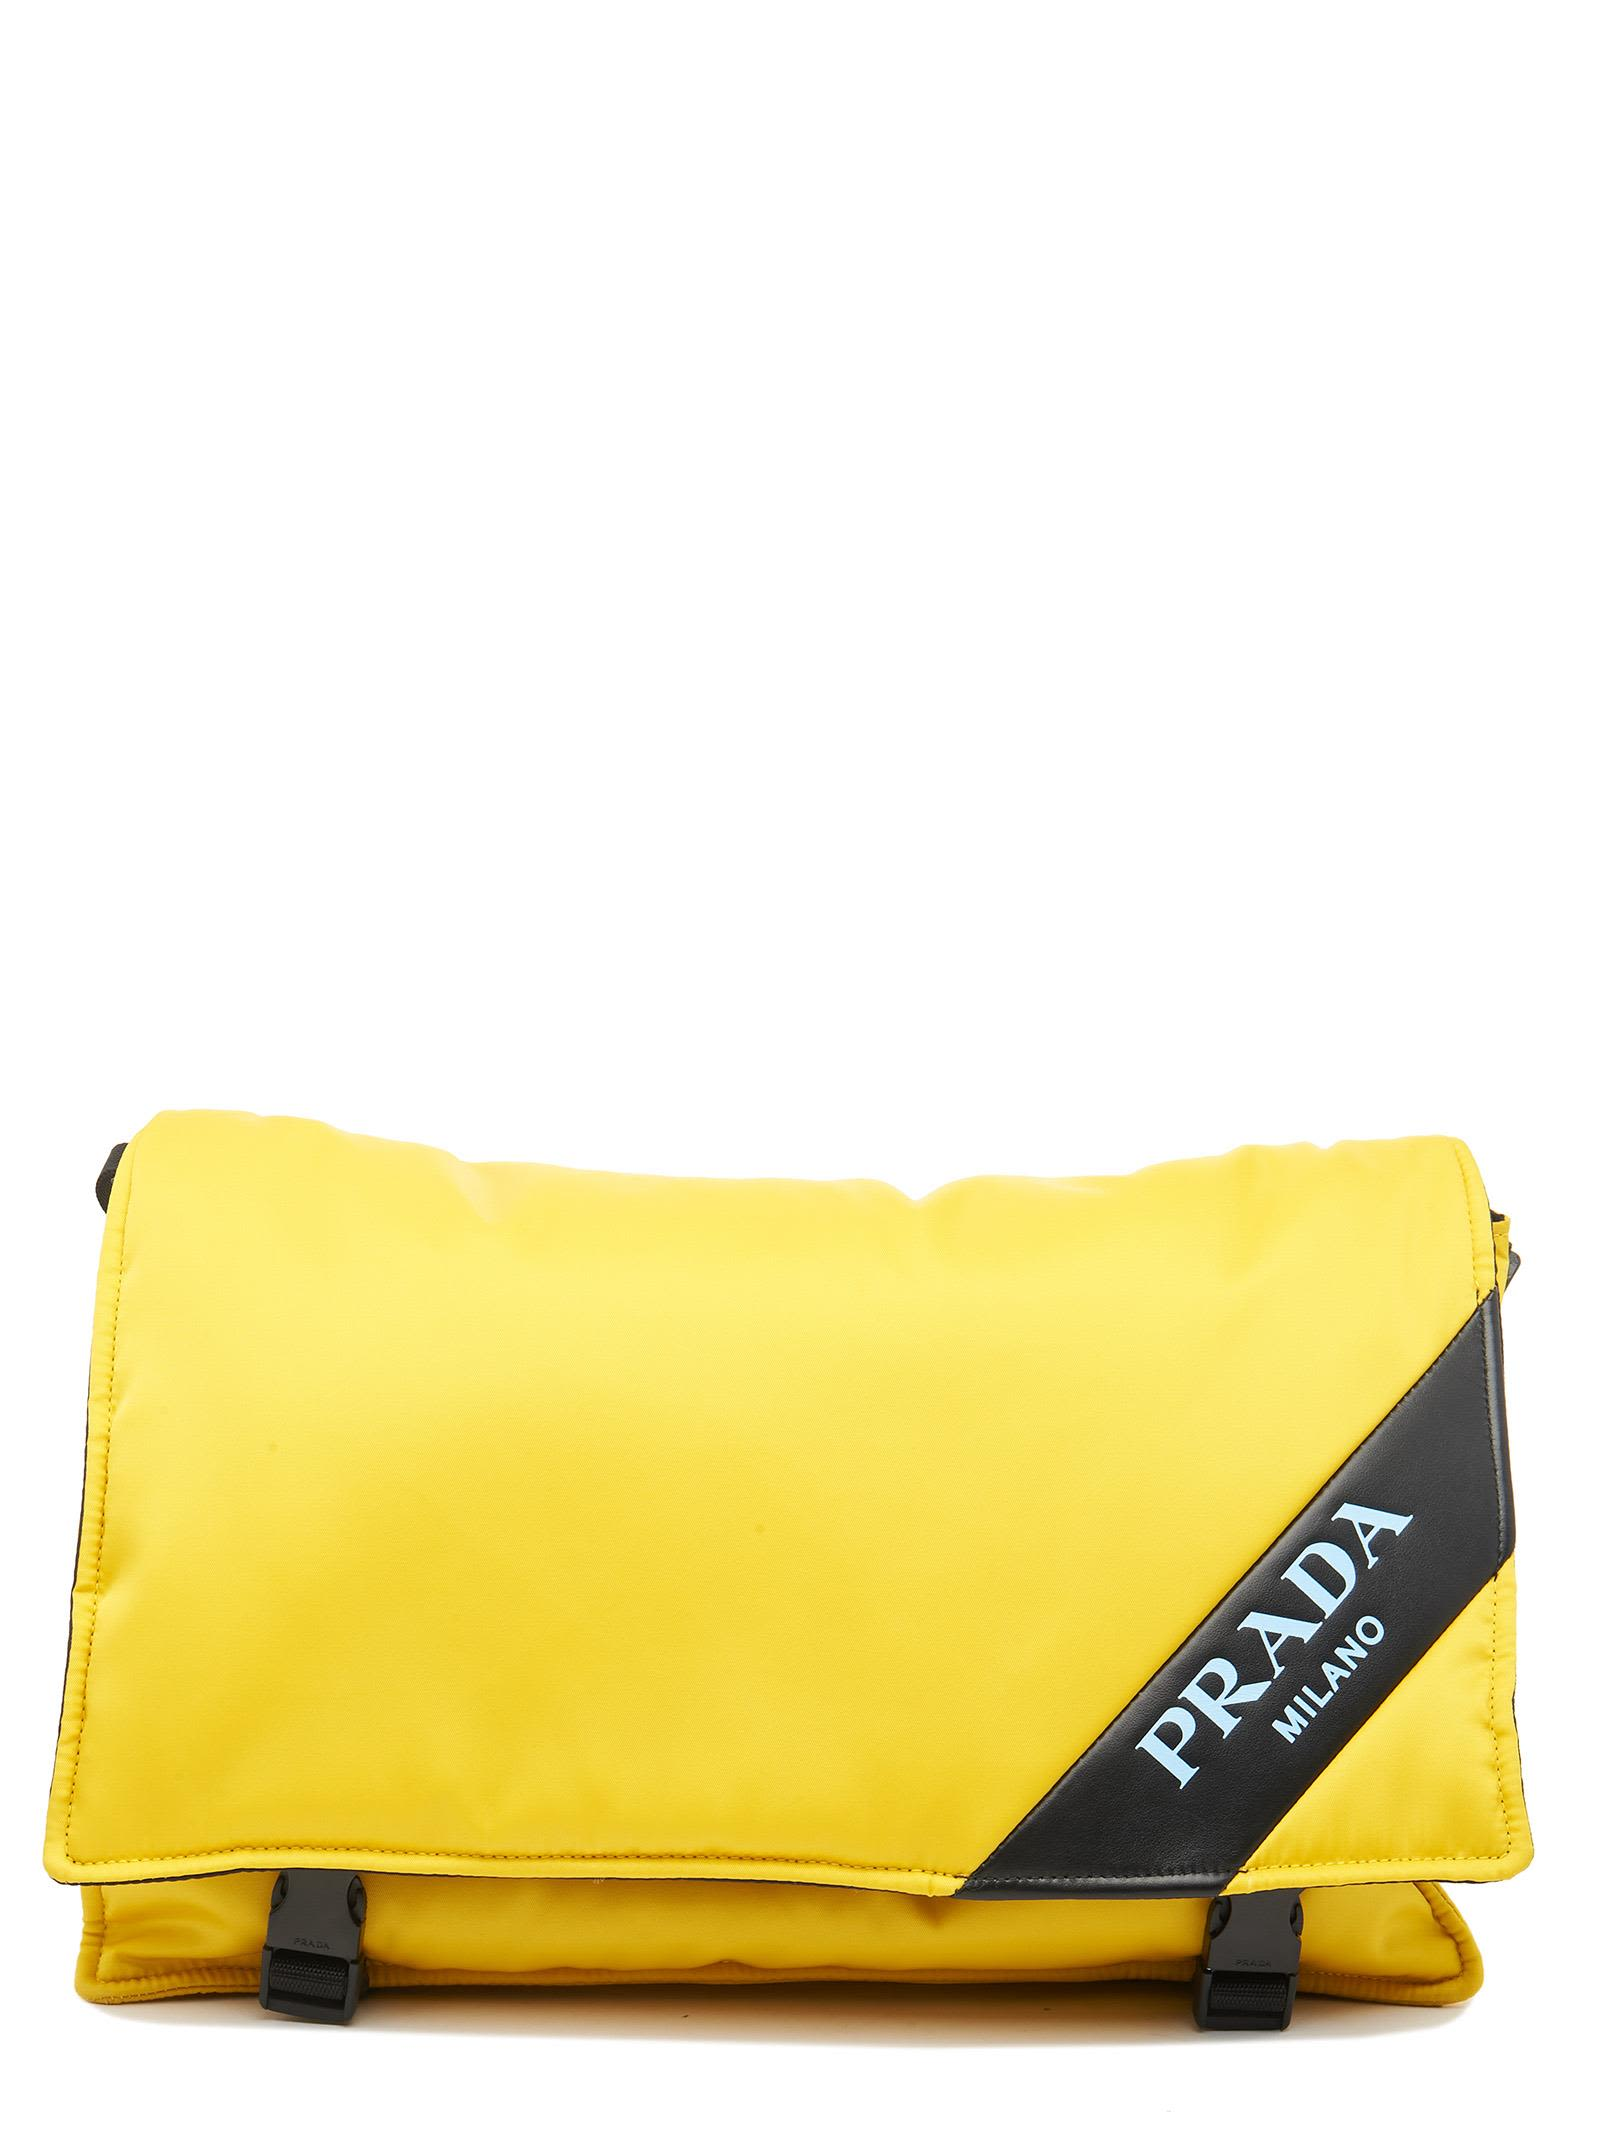 86620917825d Prada Prada 'messenger' Bag - Yellow - 10693696 | italist